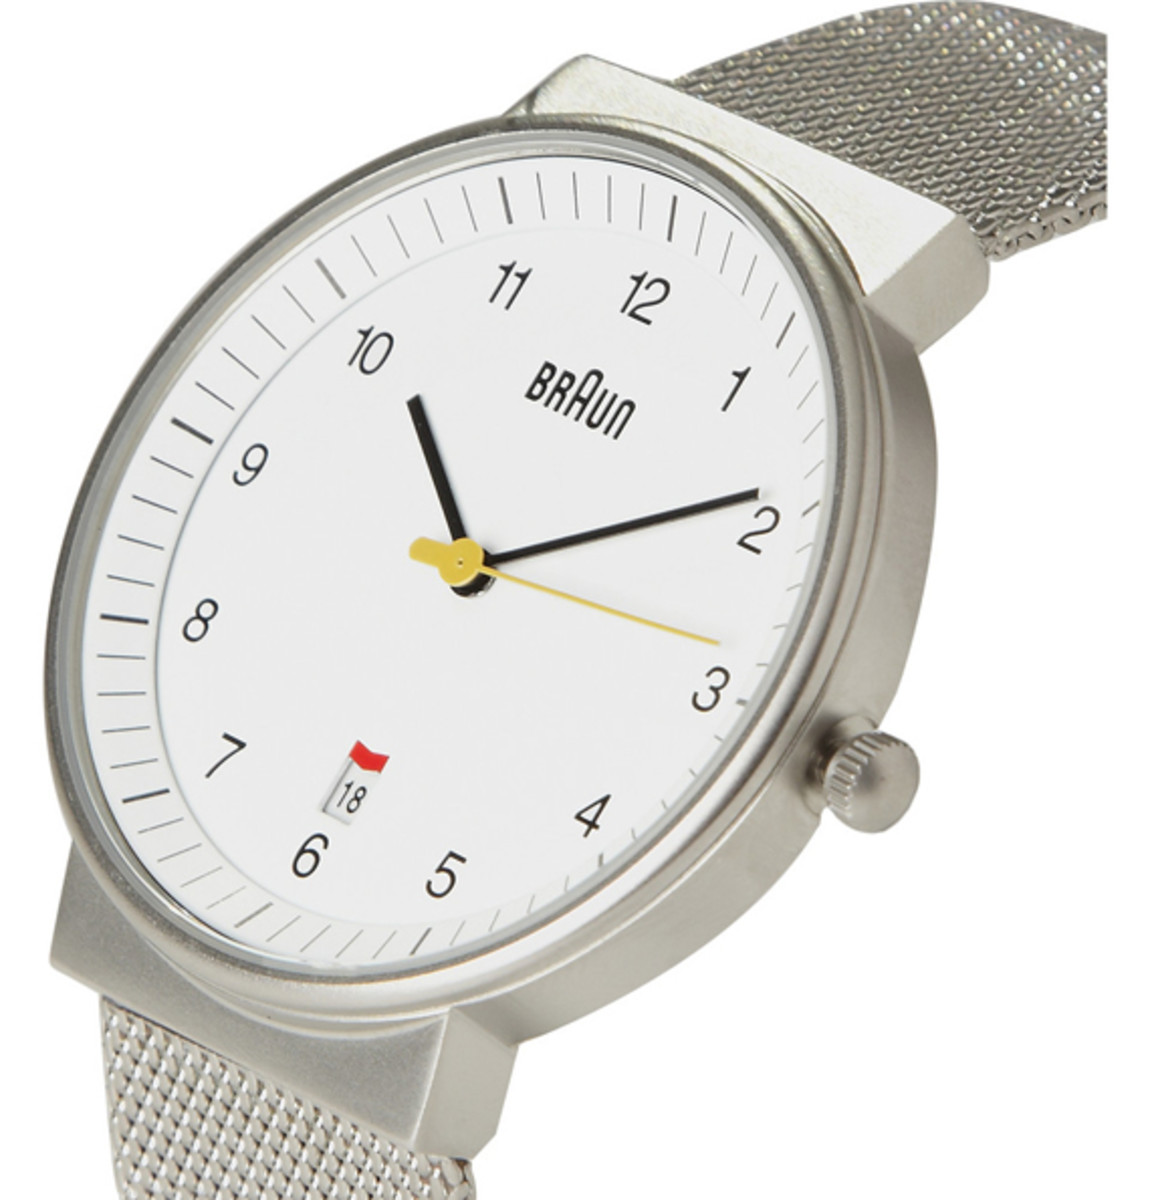 braun-watch-collection-by-dieter-rams-05